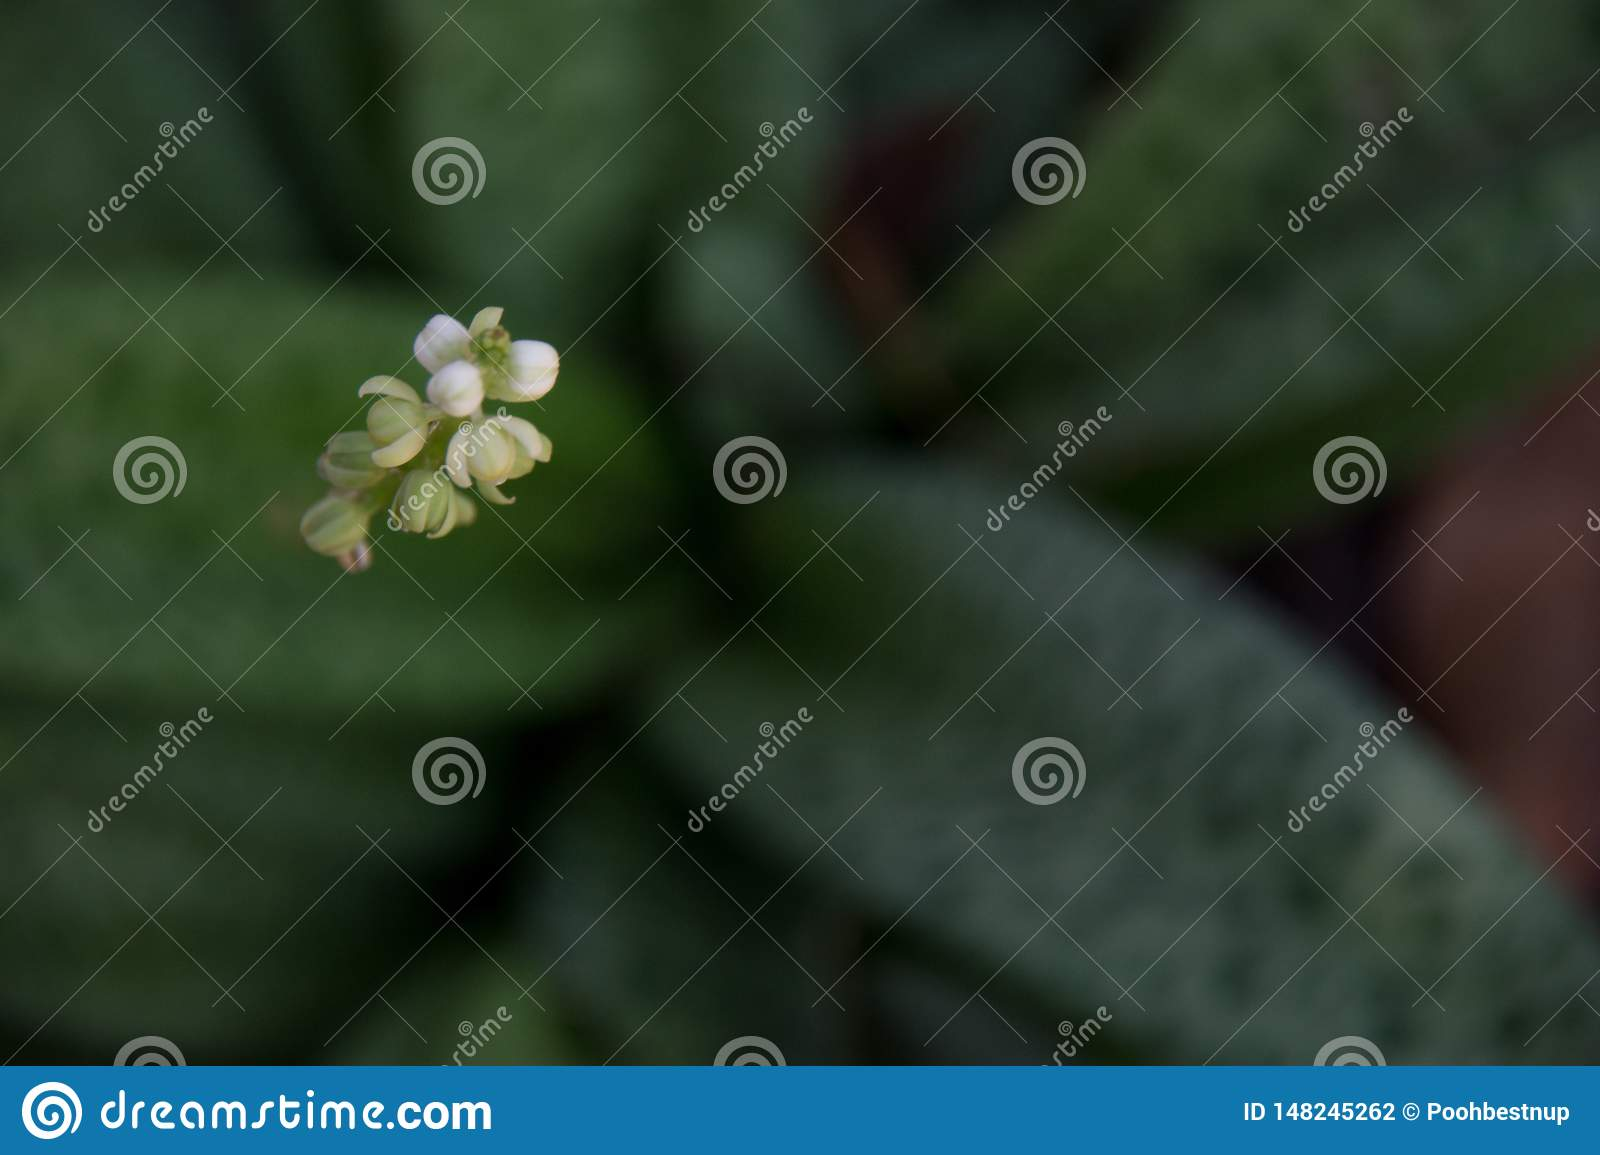 Wooden background Decorated with coffee beans, frangipani flowers and leaves